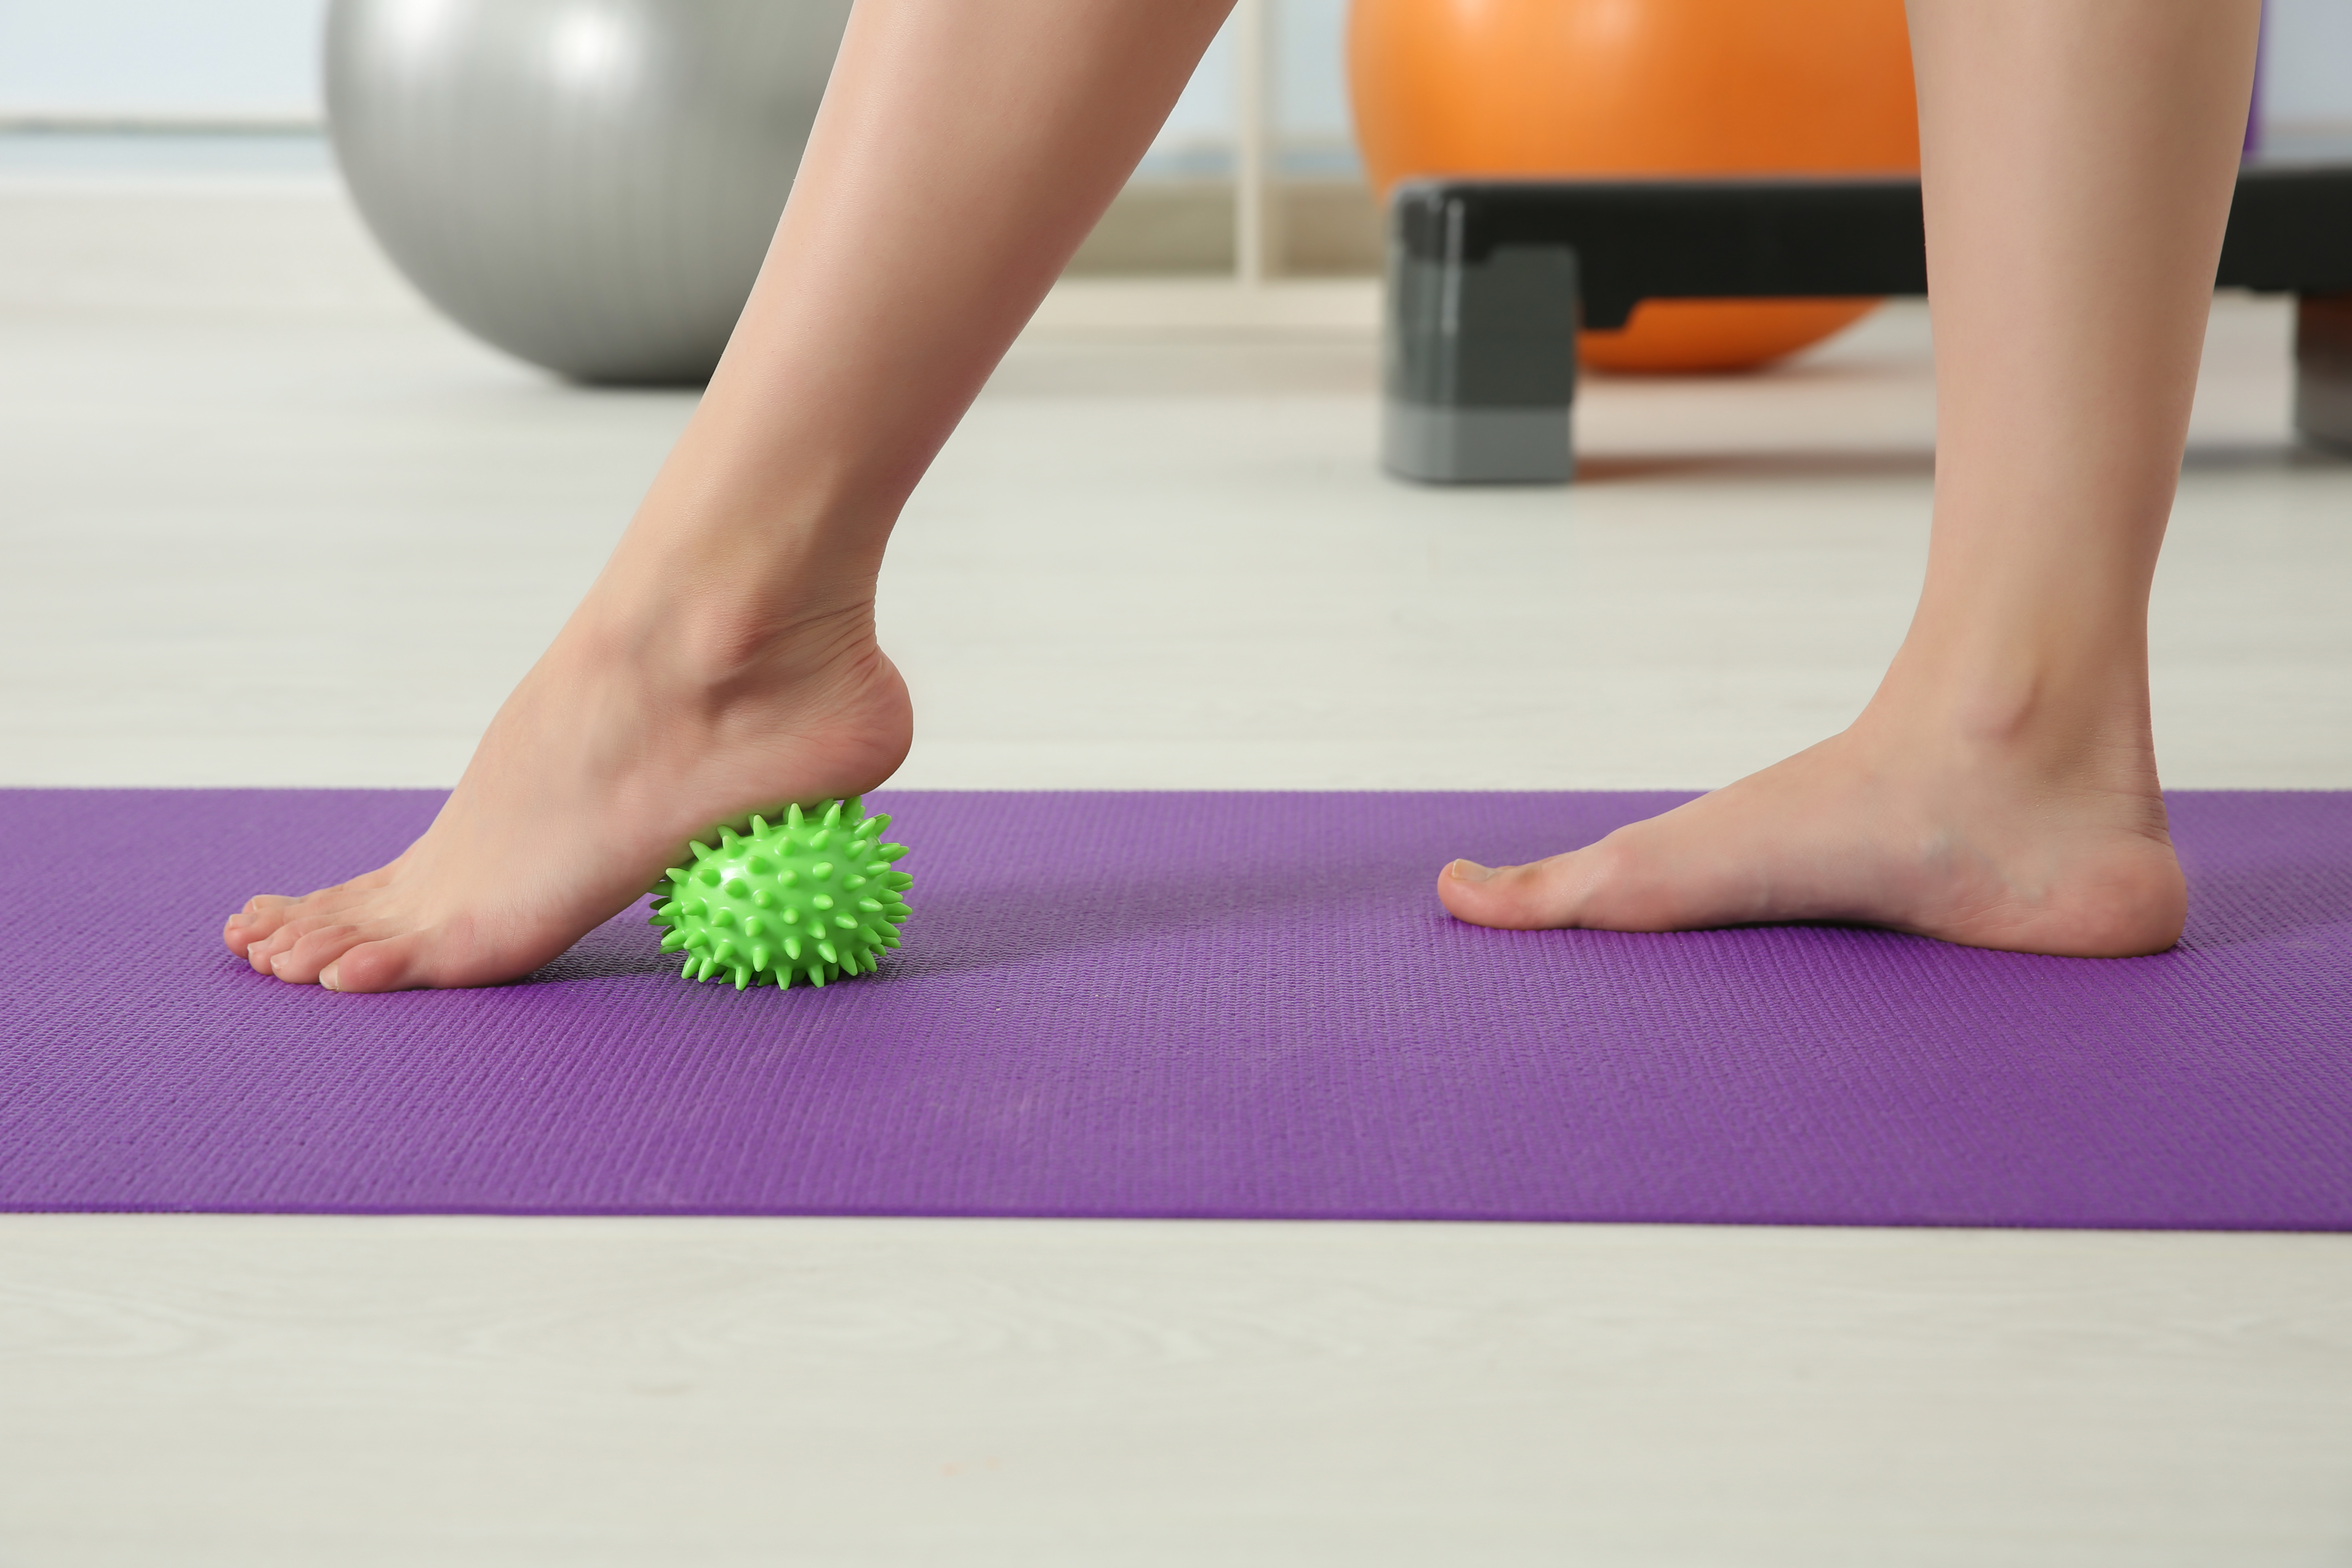 A woman massaging her foot using therapy balls, practicing yoga to strengthen and care for feet